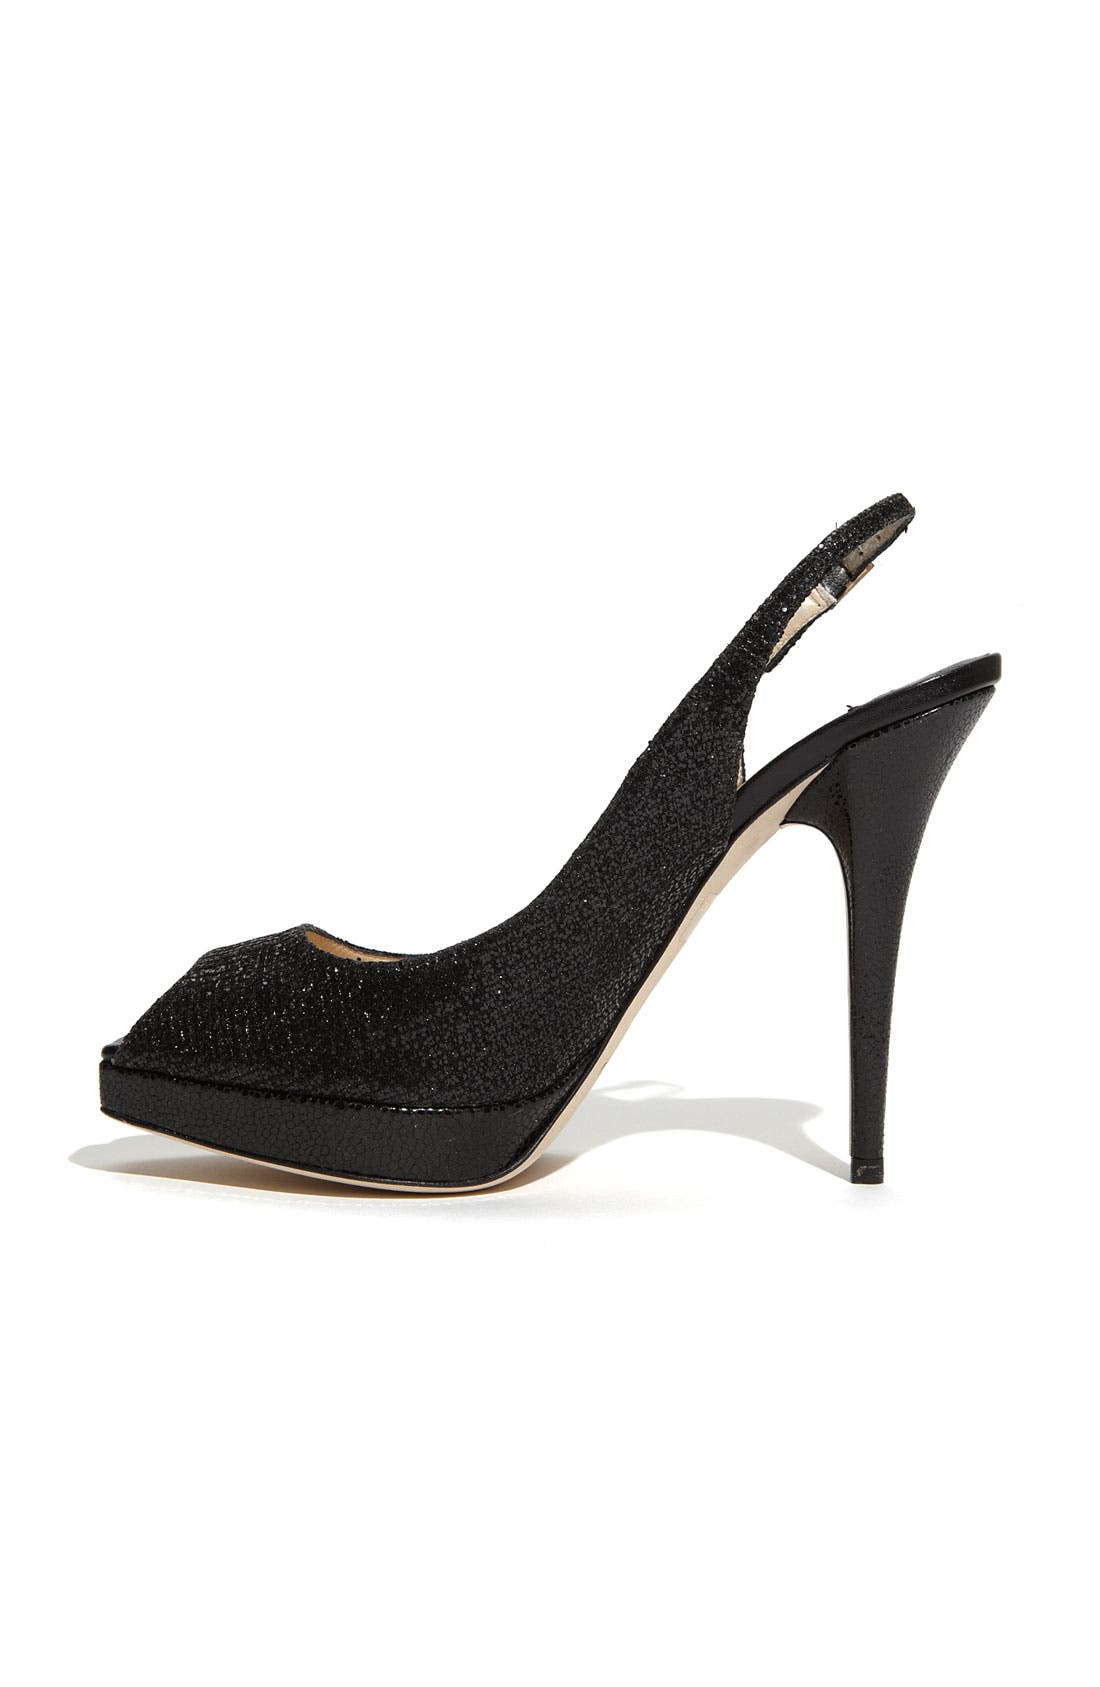 Alternate Image 2  - Jimmy Choo 'Clue' Glitter Slingback Pump (Women)